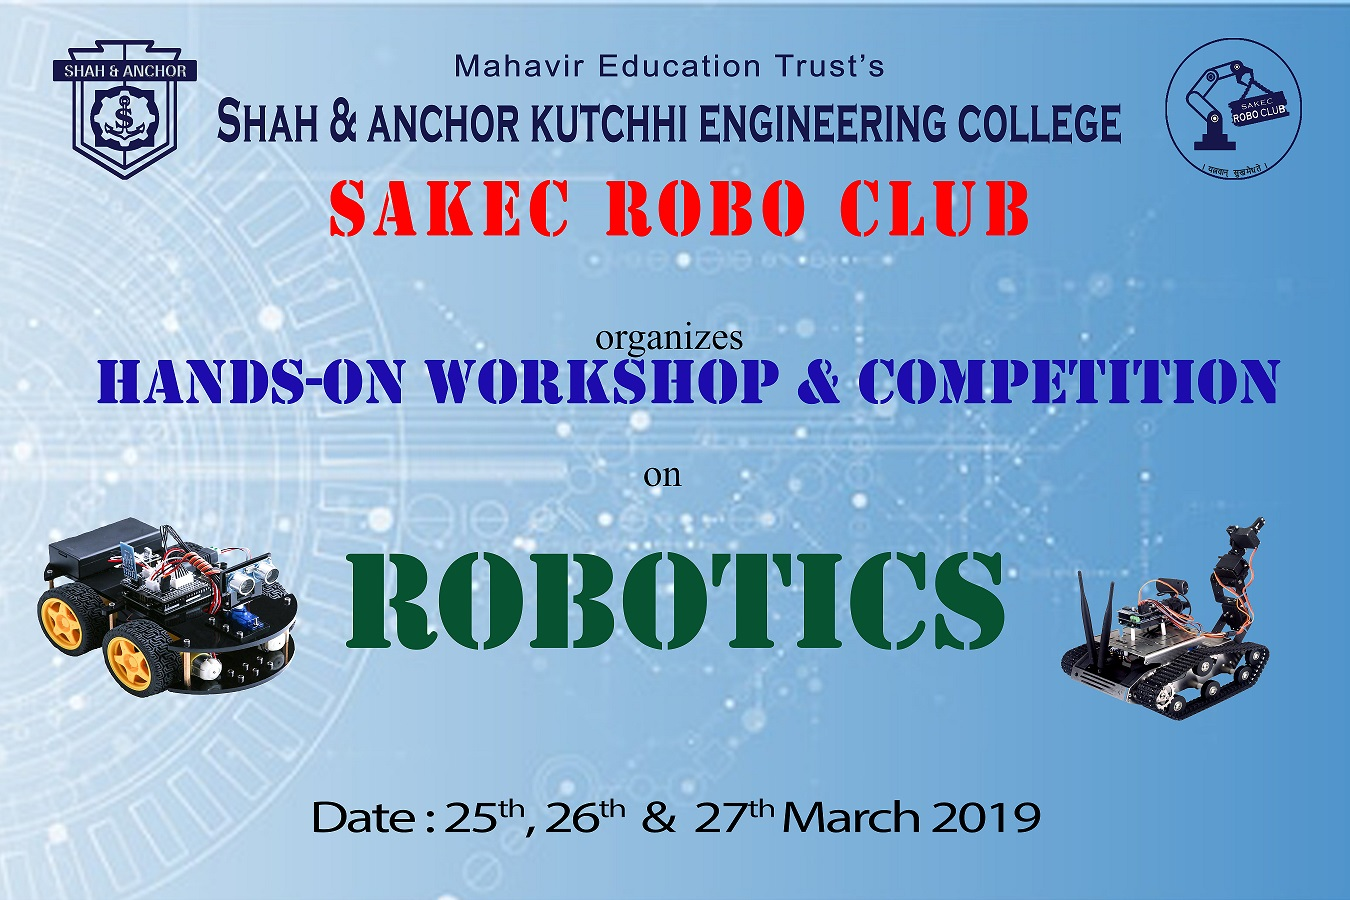 Hands-on Workshop and Competition on Robotics